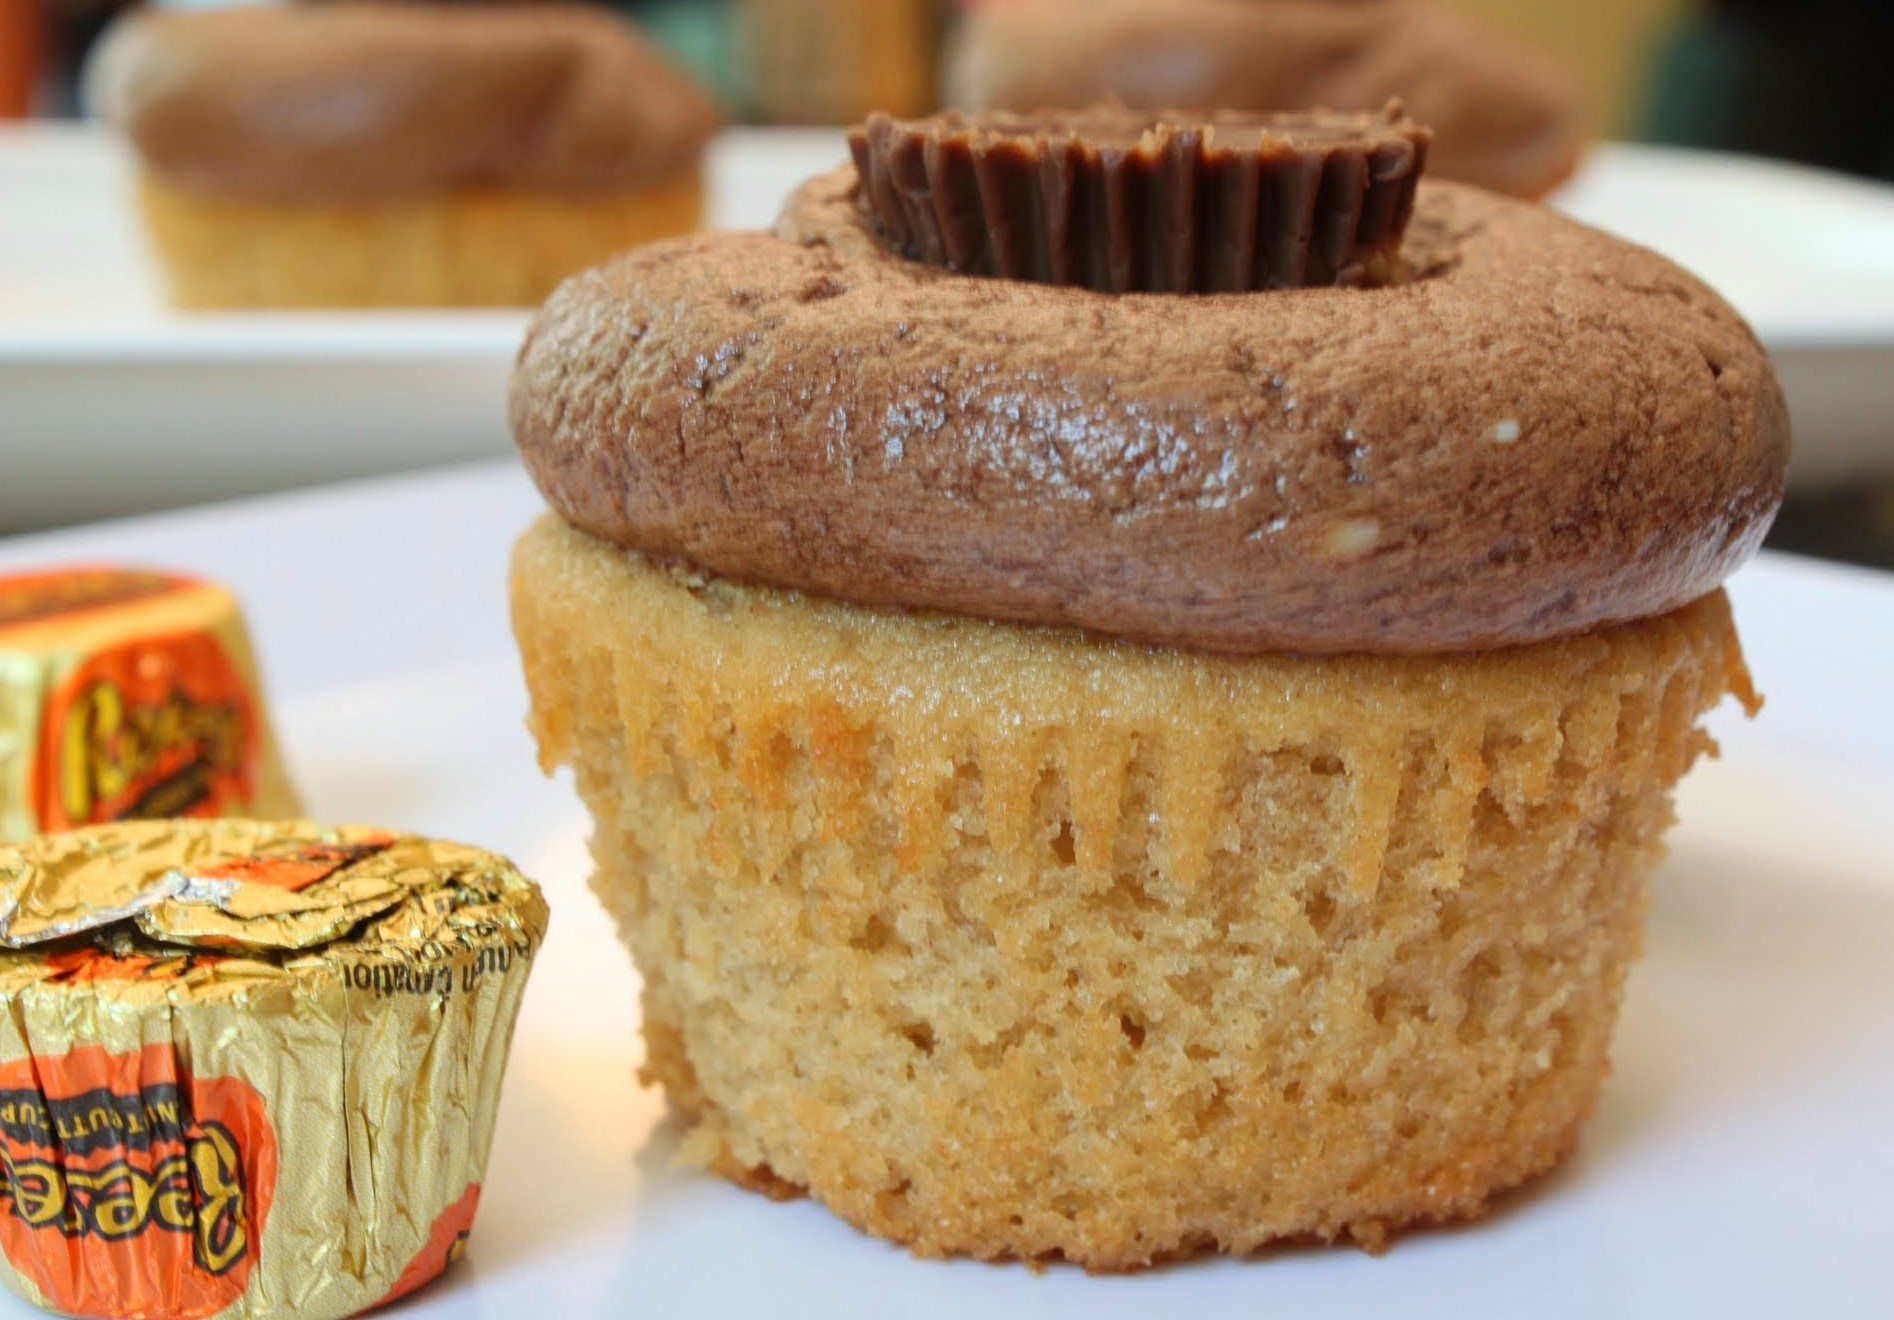 Double Peanut Butter Cup Cupcakes